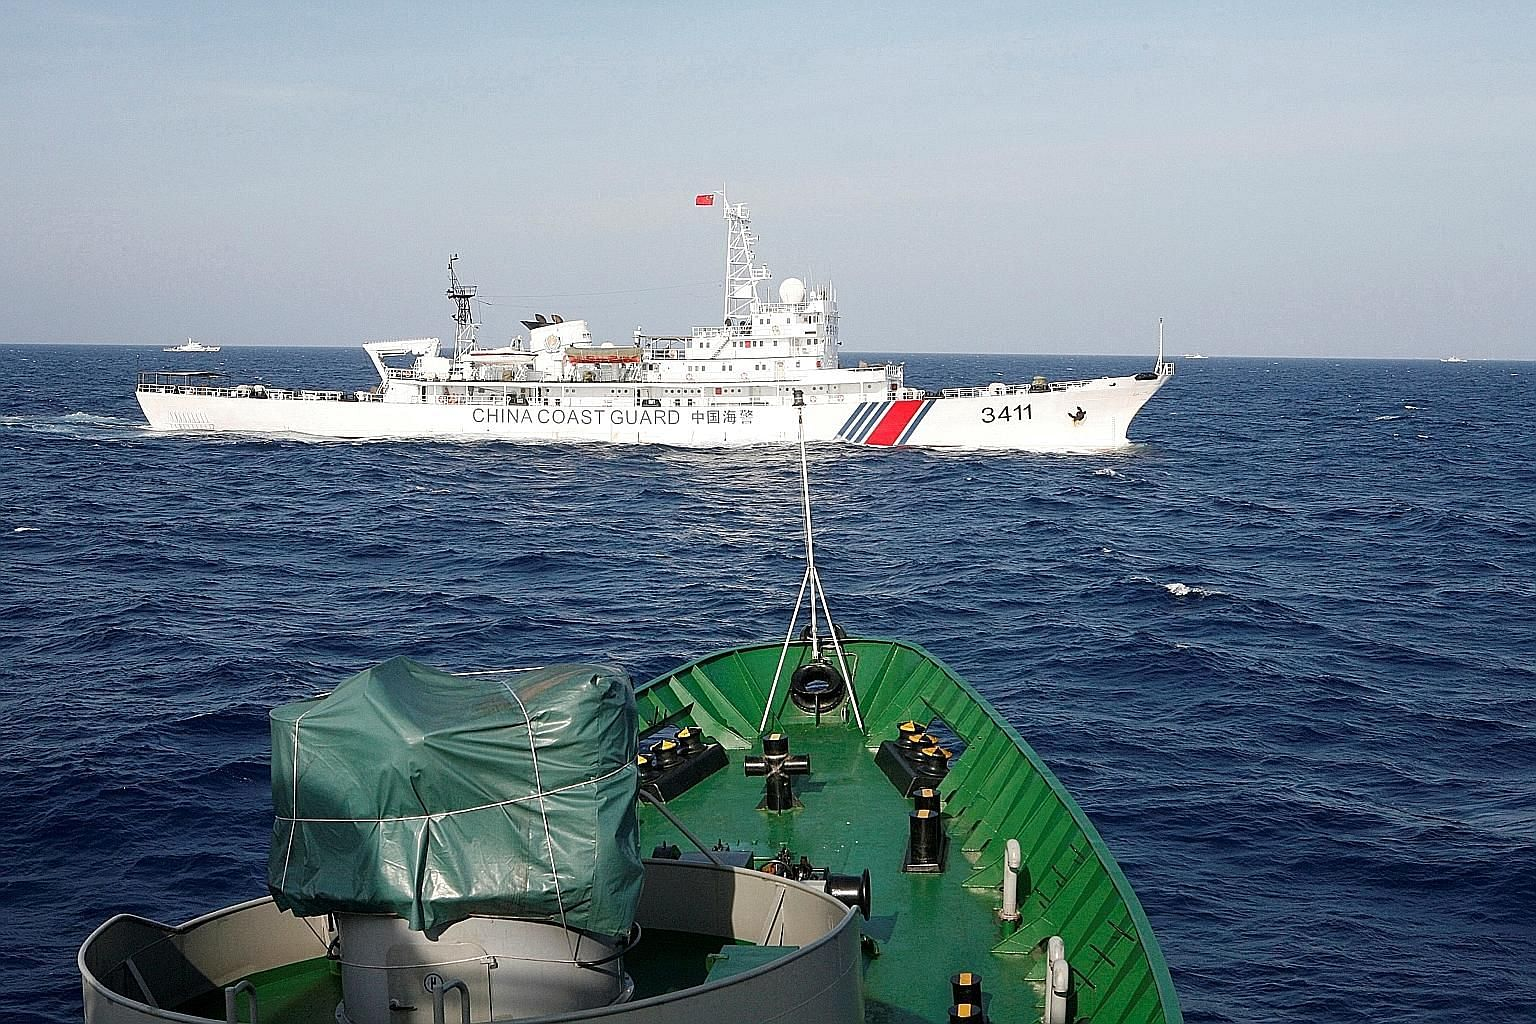 A 2014 file photo showing a China Coast Guard vessel near a Vietnam Marine Guard ship in the South China Sea, about 210km off Vietnam. In some Asean countries like the Philippines and Vietnam, nationalism that used to be defined in anti-US terms now